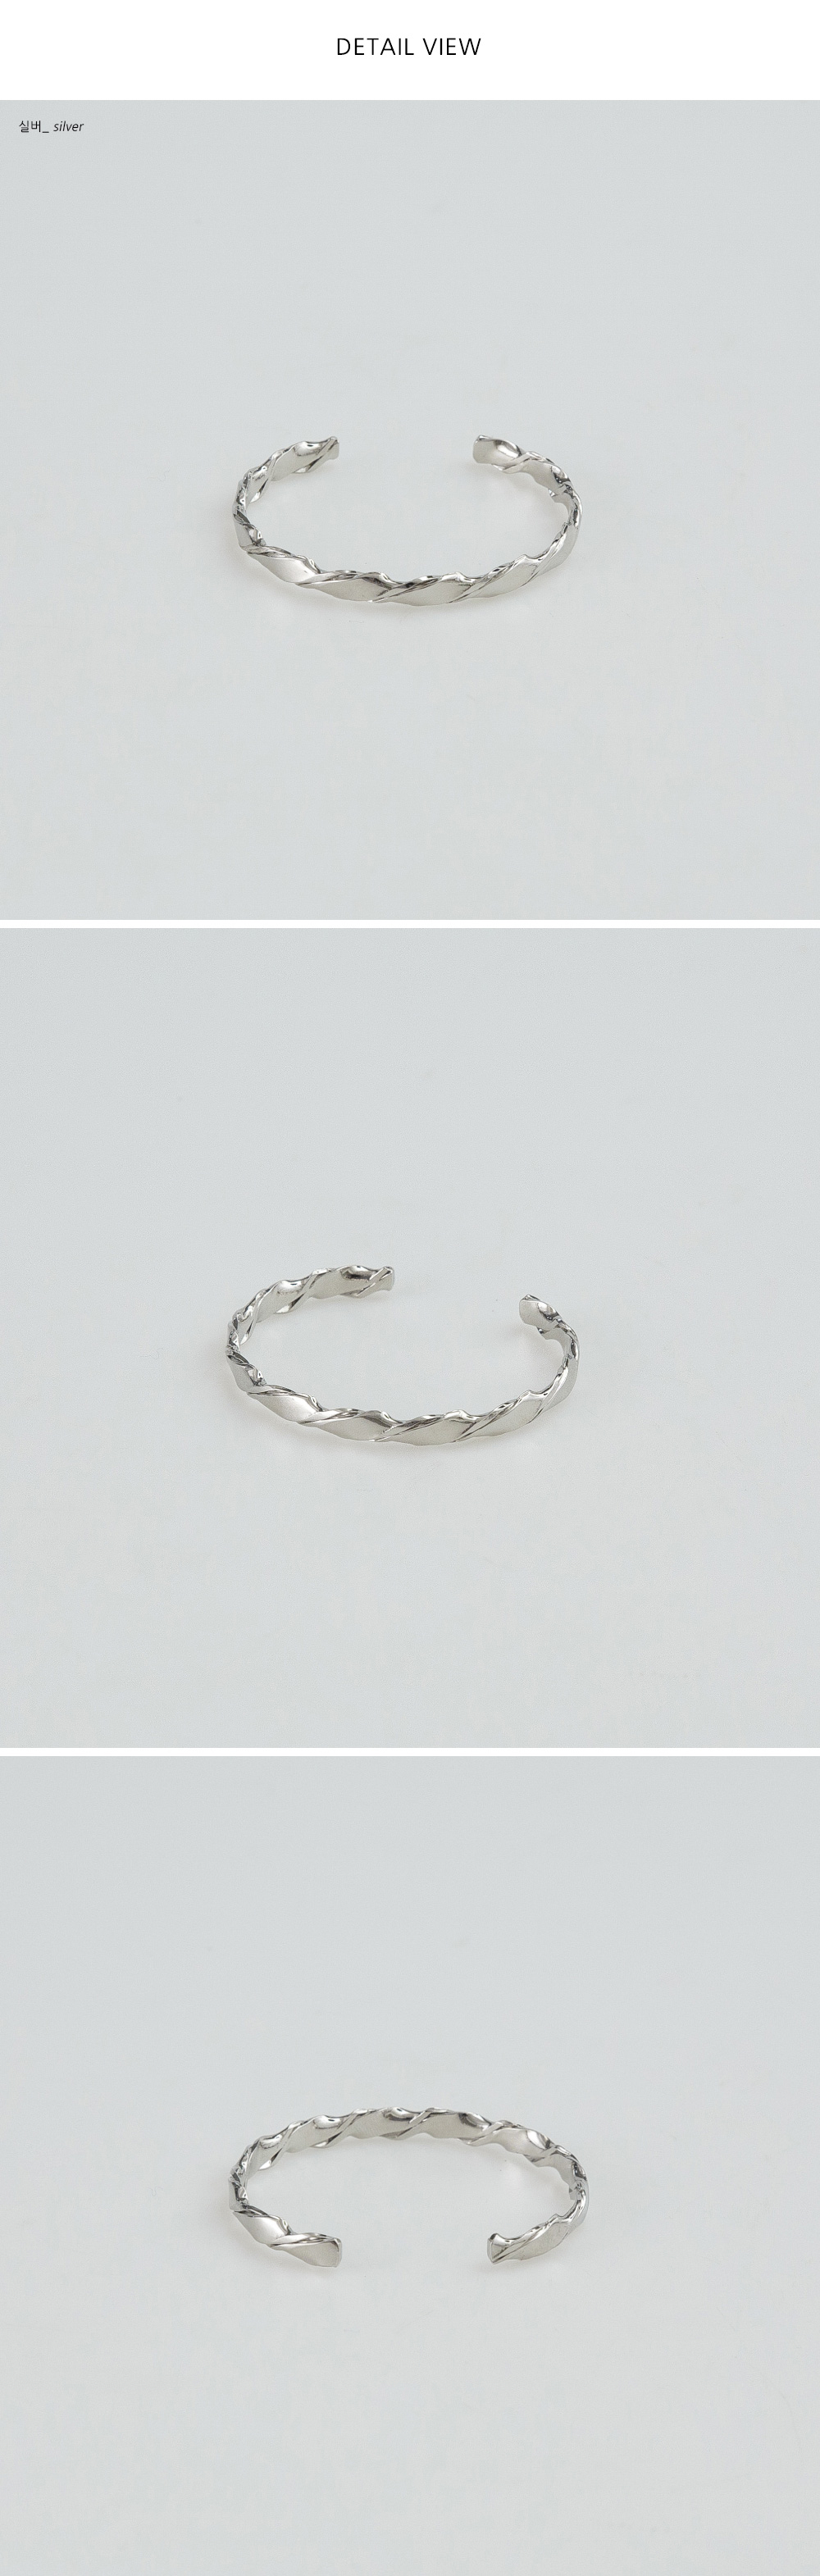 silver color point bracelet